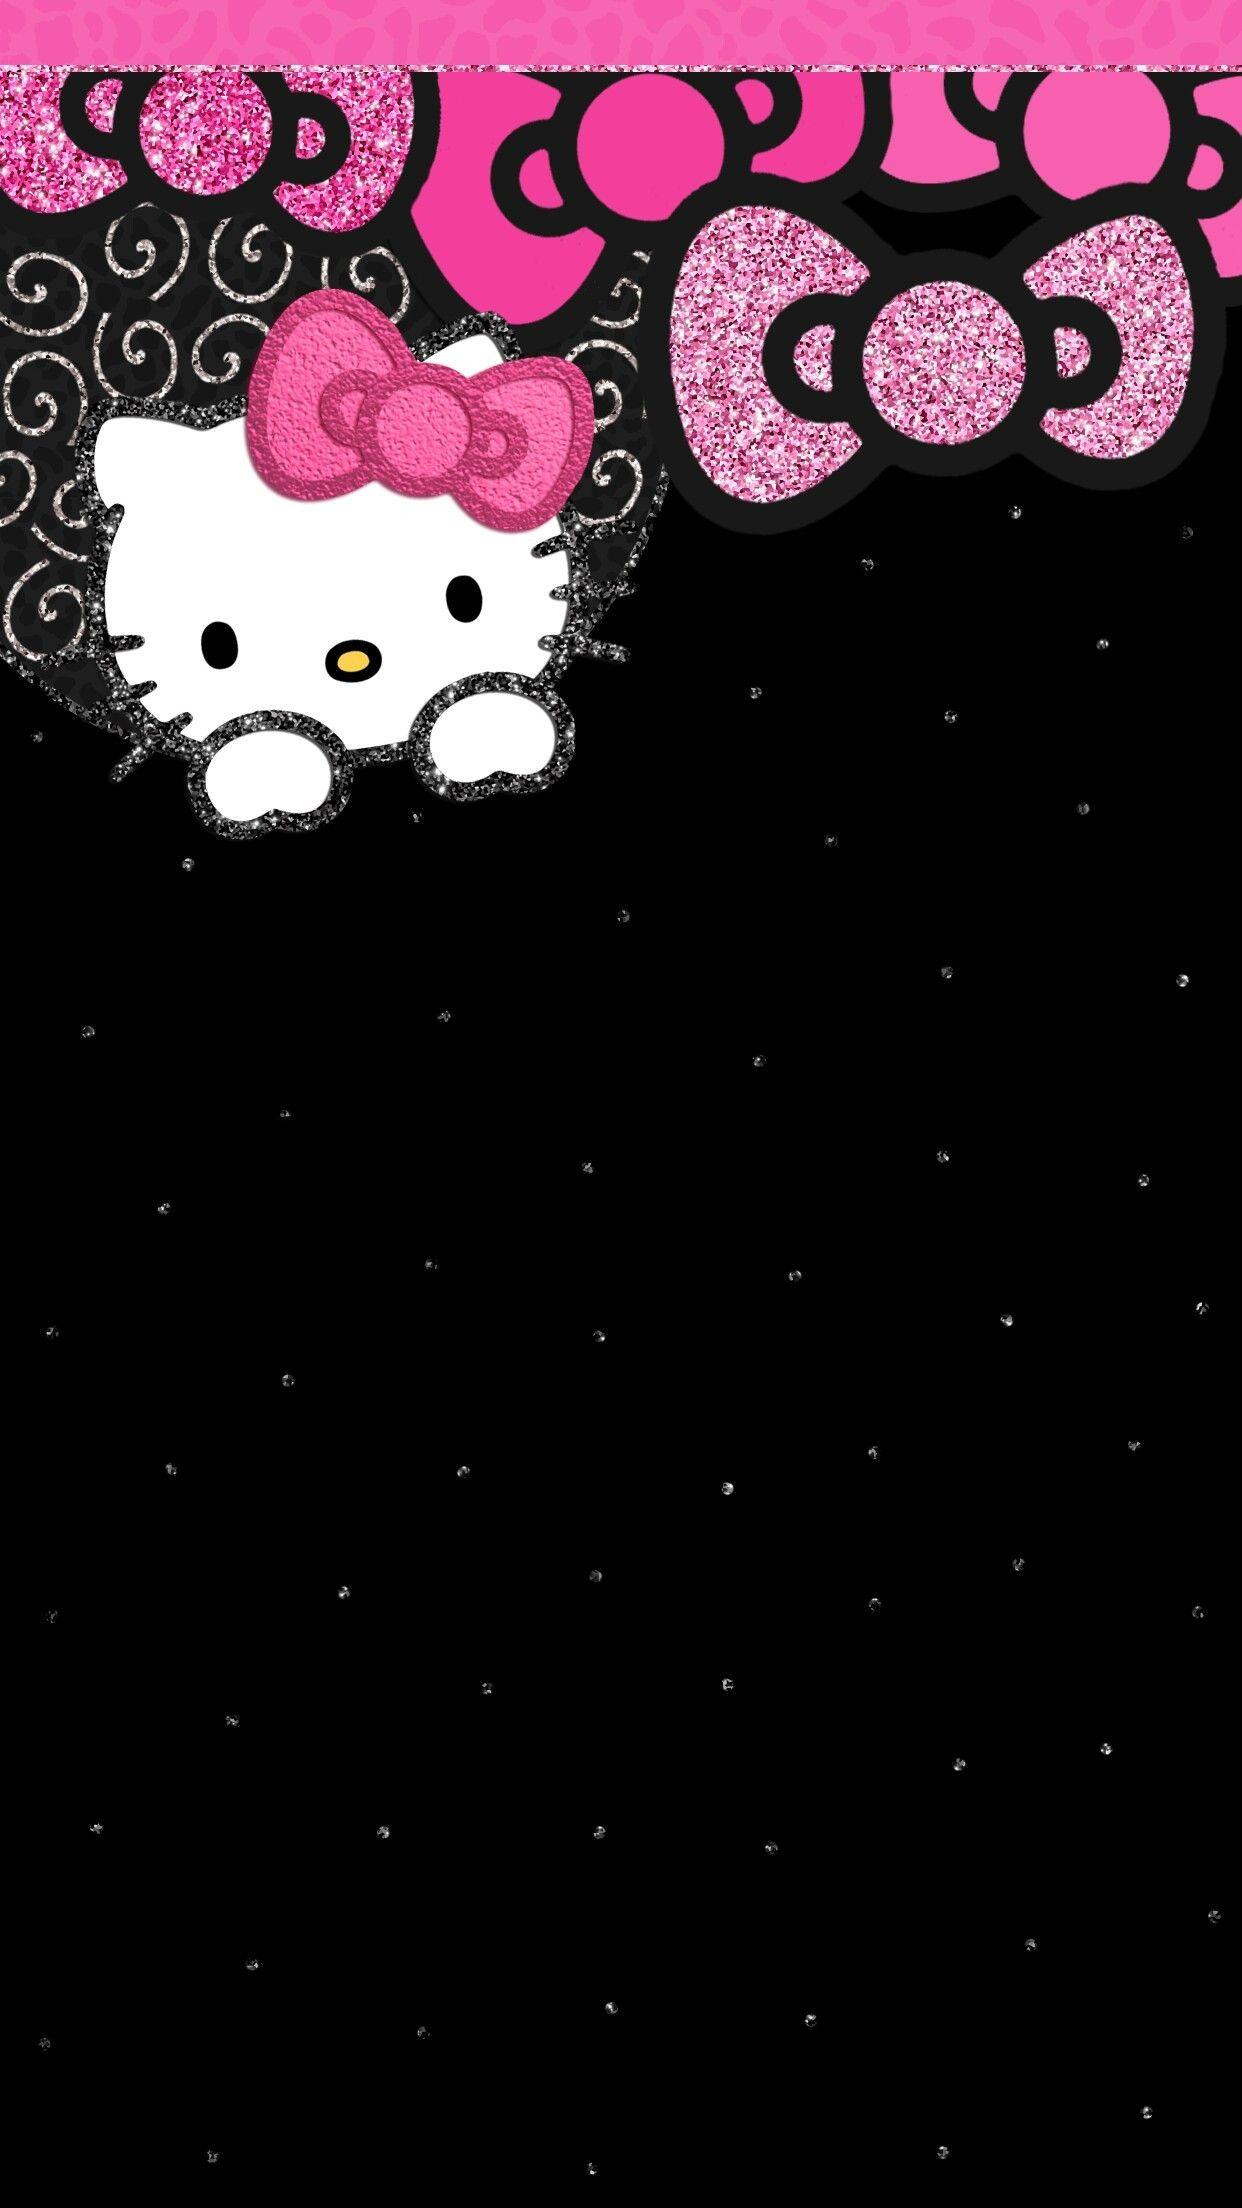 Hello Kitty Wallpapers Black And Pink - Wallpaper Cave